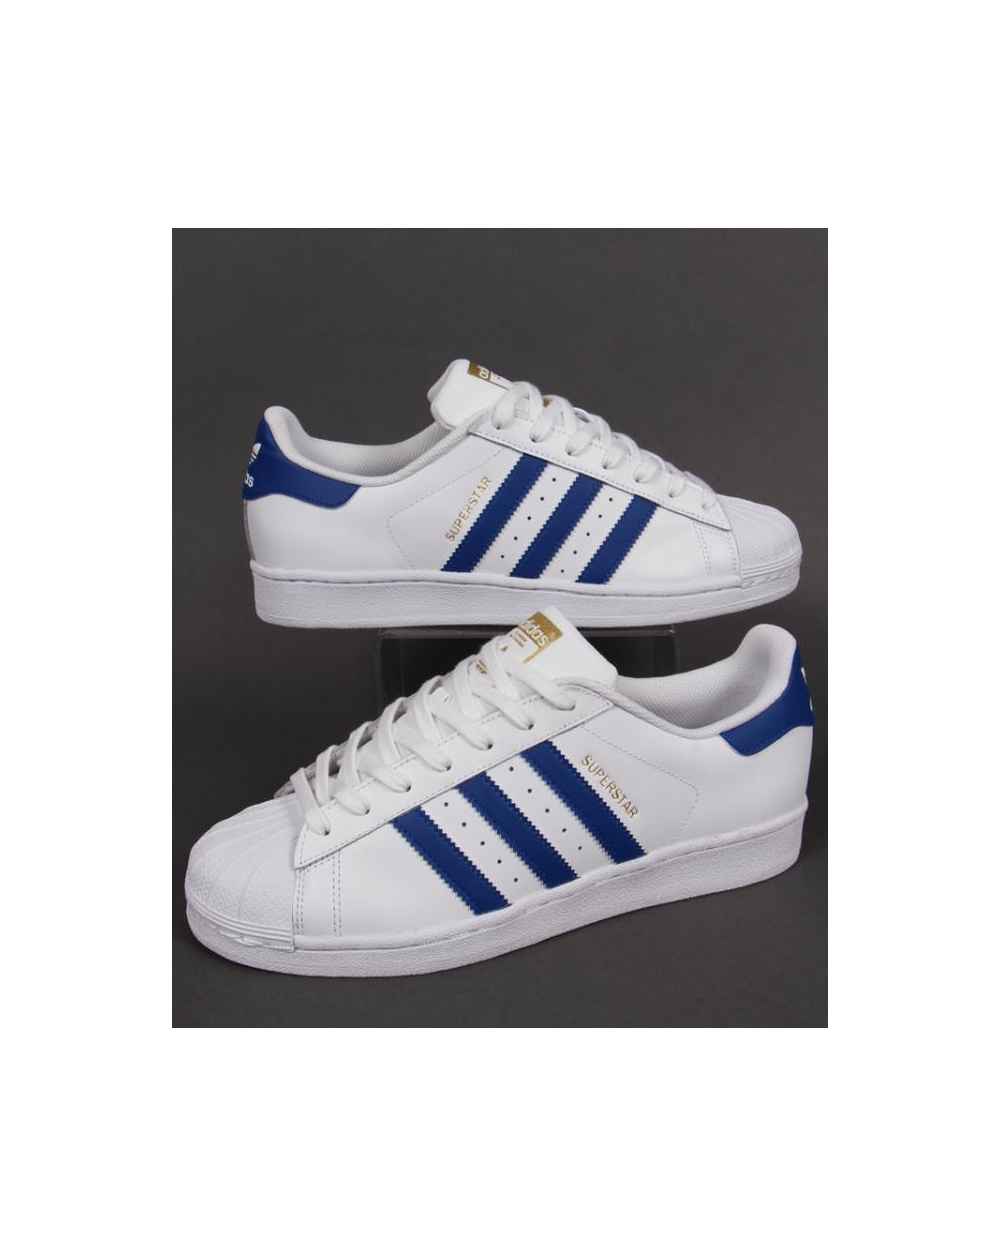 Superstar Shoes, Cheap Adidas Superstar Sneakers 2017